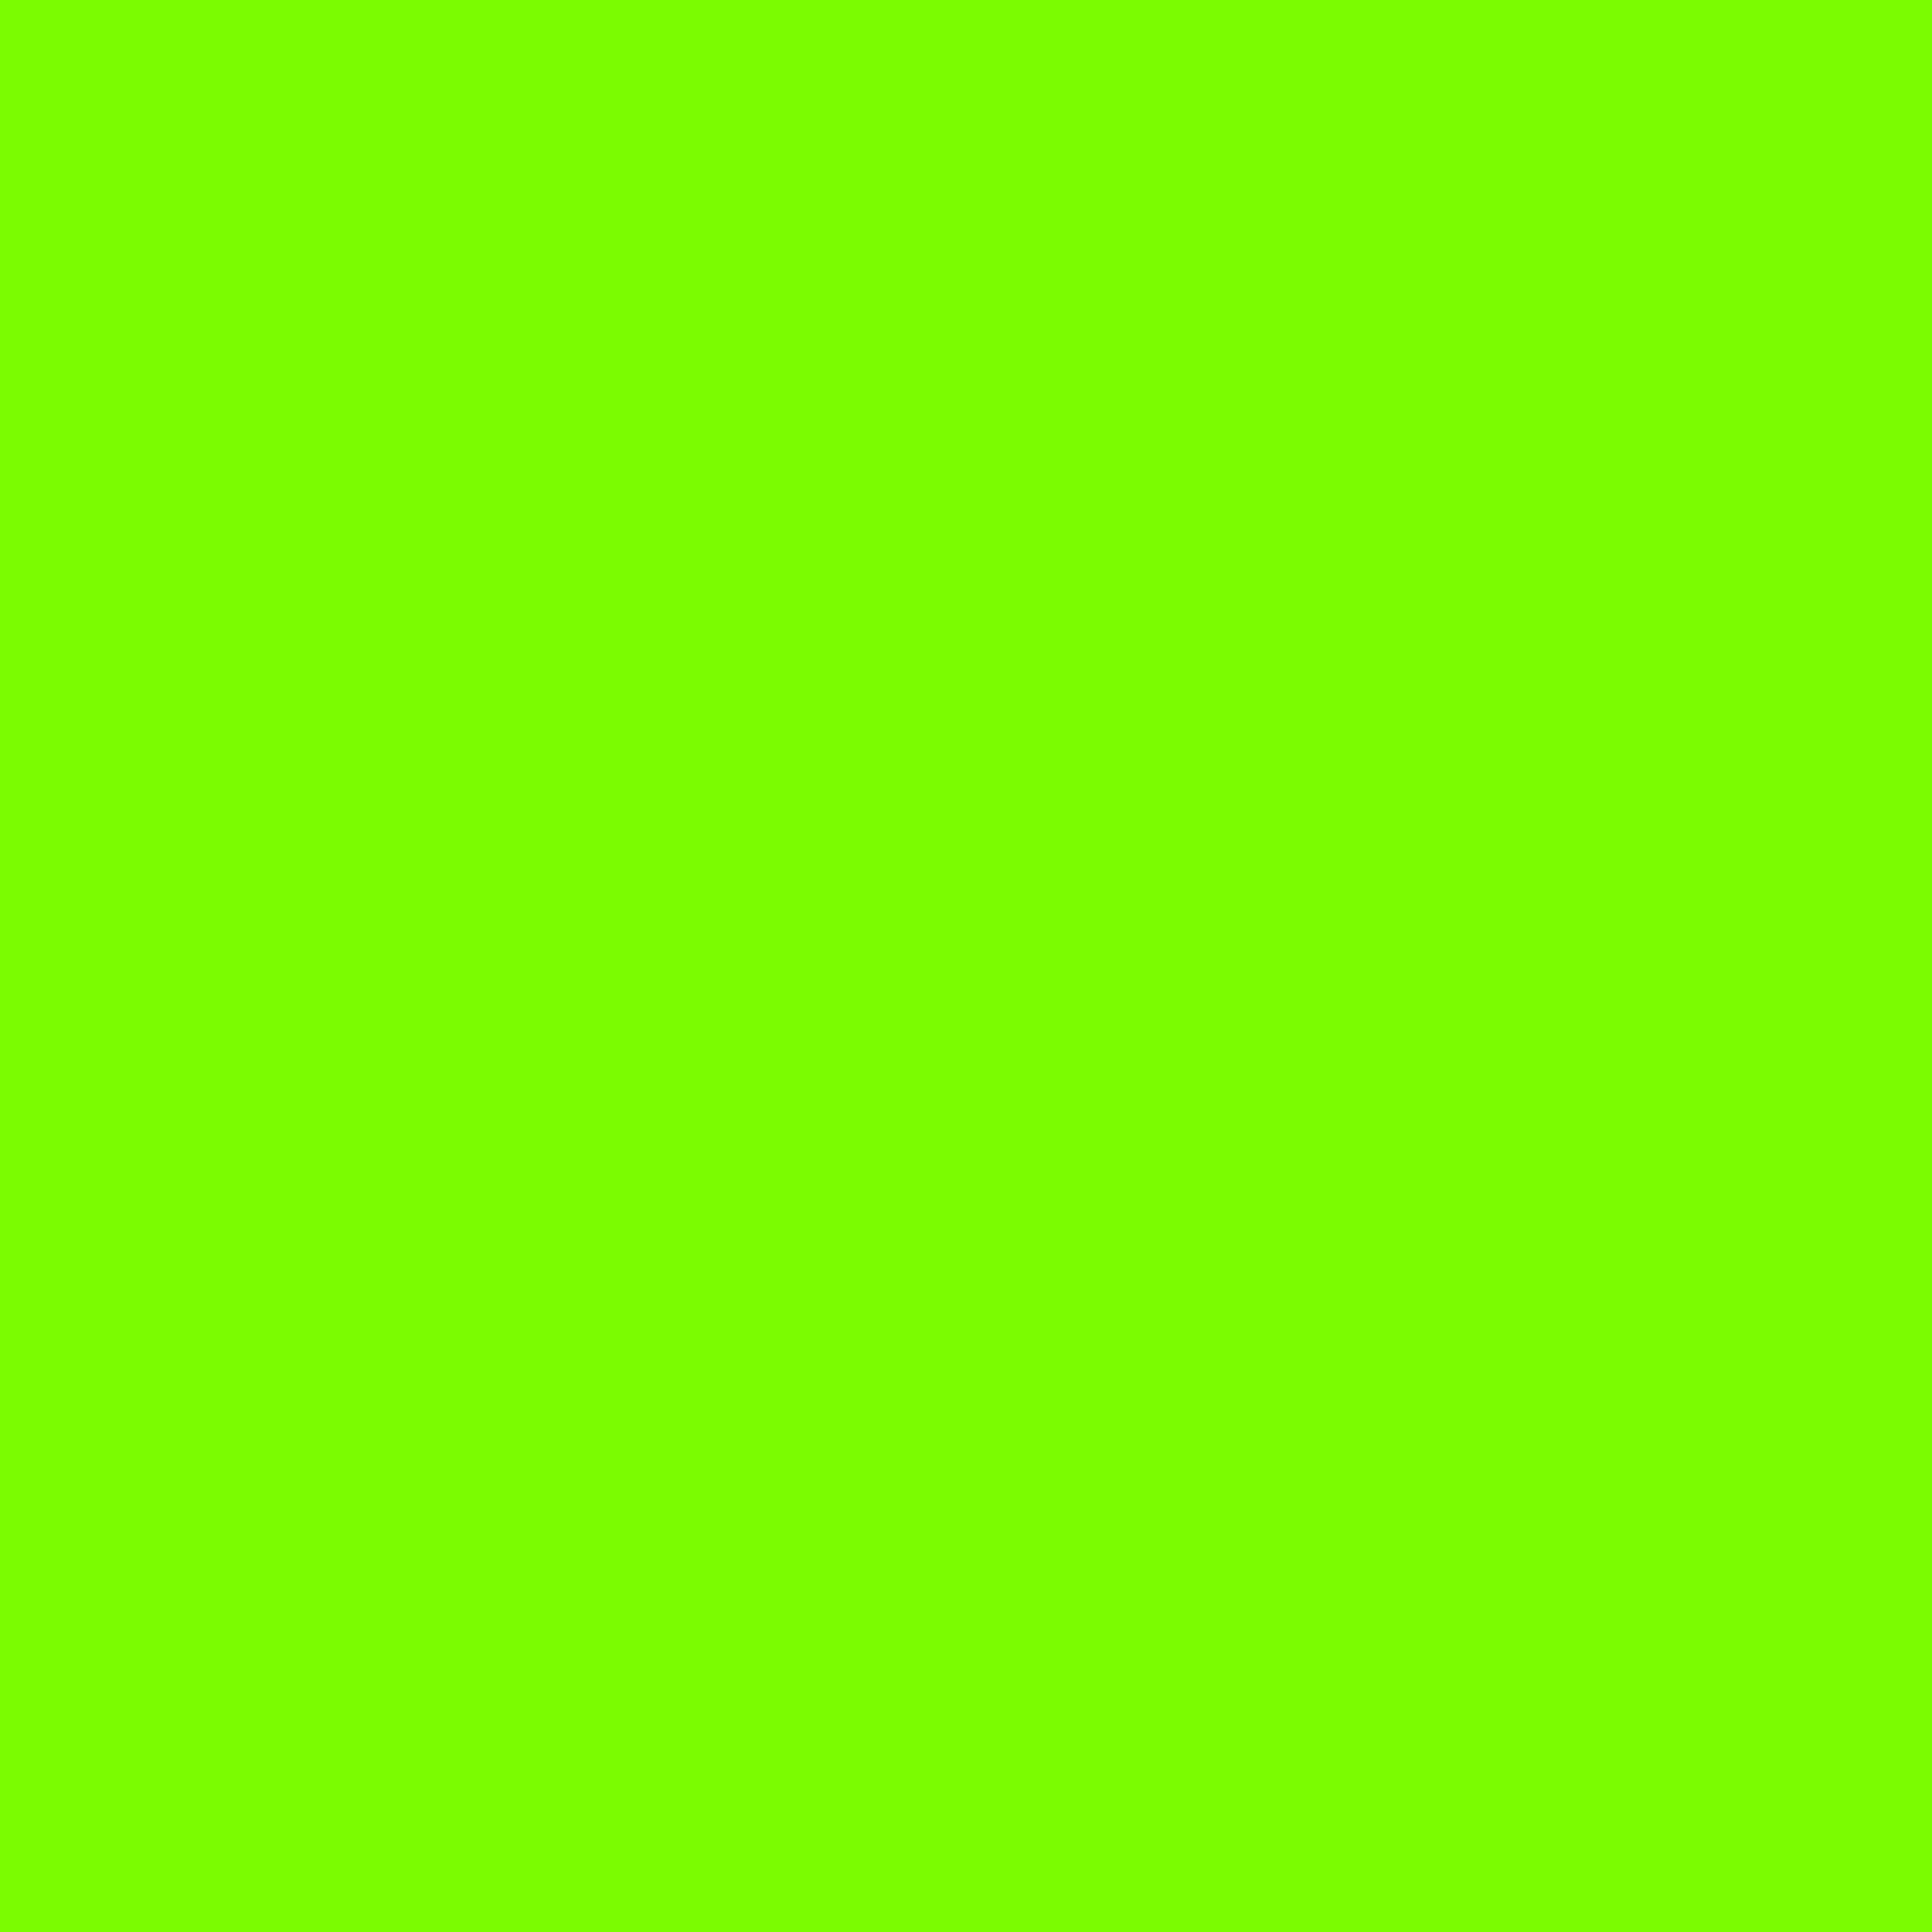 3600x3600 Lawn Green Solid Color Background